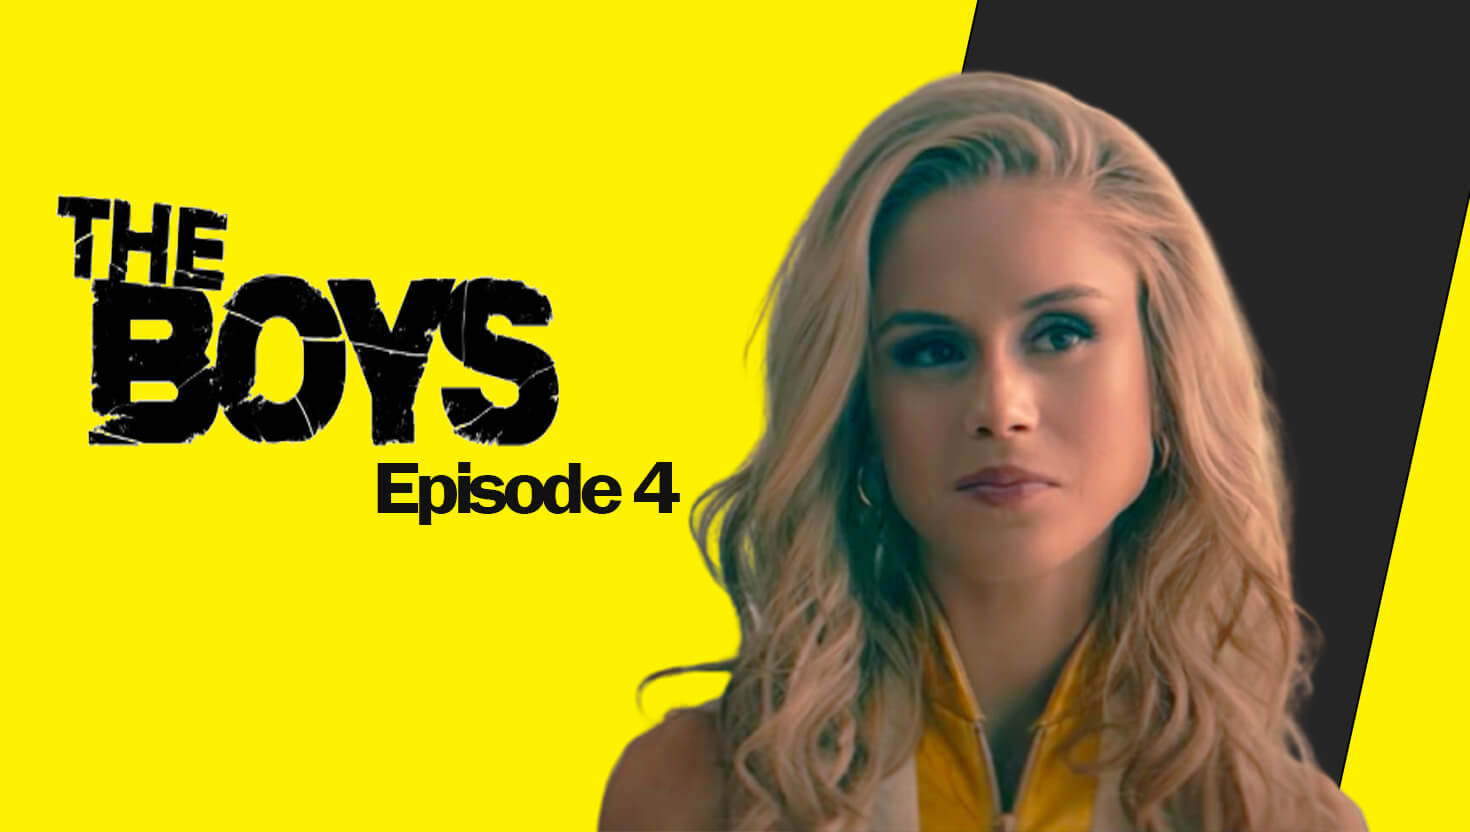 The-Boys-Season-2-Episode-4-Recap